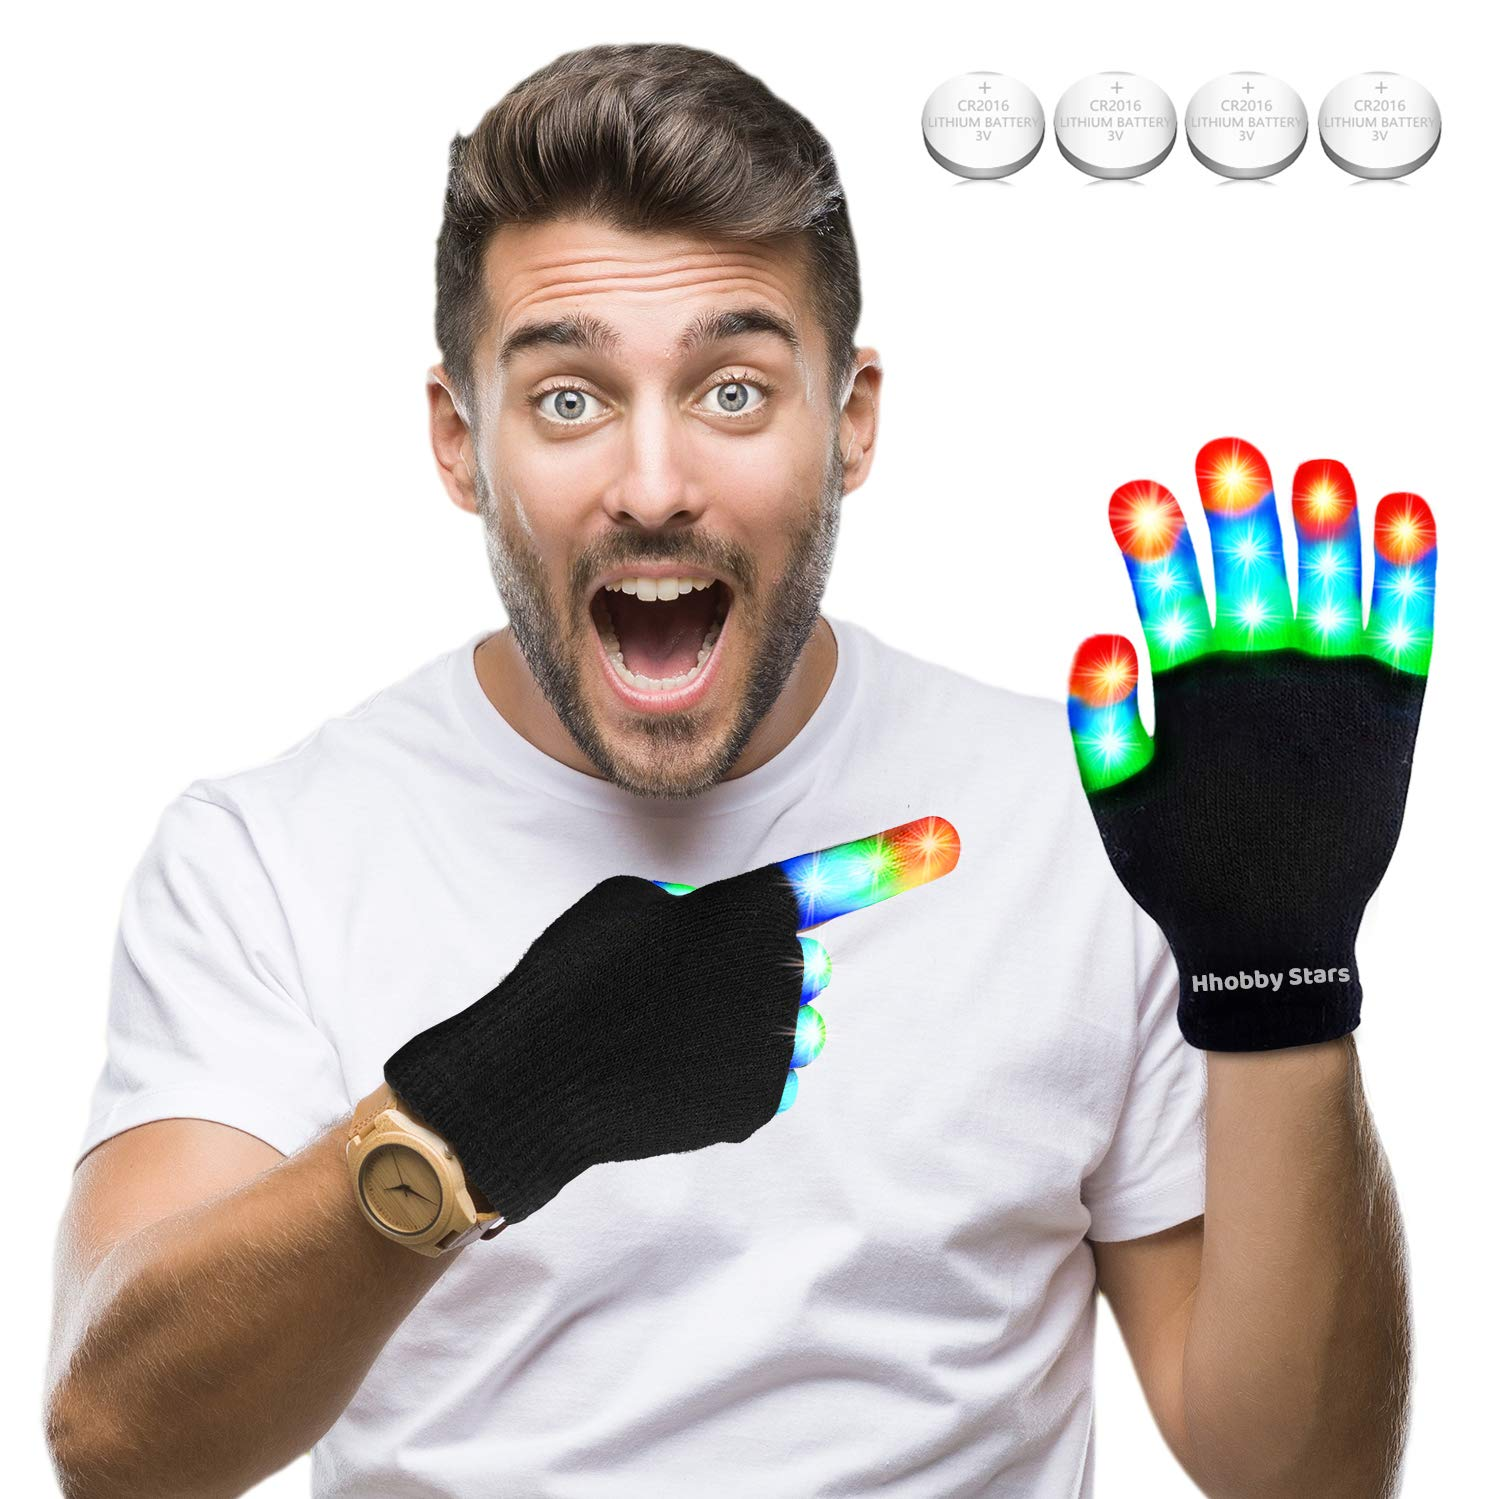 LED Flashing Finger Lighting Gloves, Colorful Light Up Toys with Extra Batteries for Kids Above 10 Years and Adults,Camping Outdoor Games Dark Party Favors Sensory Glow Toys, Best Gift for Christmas